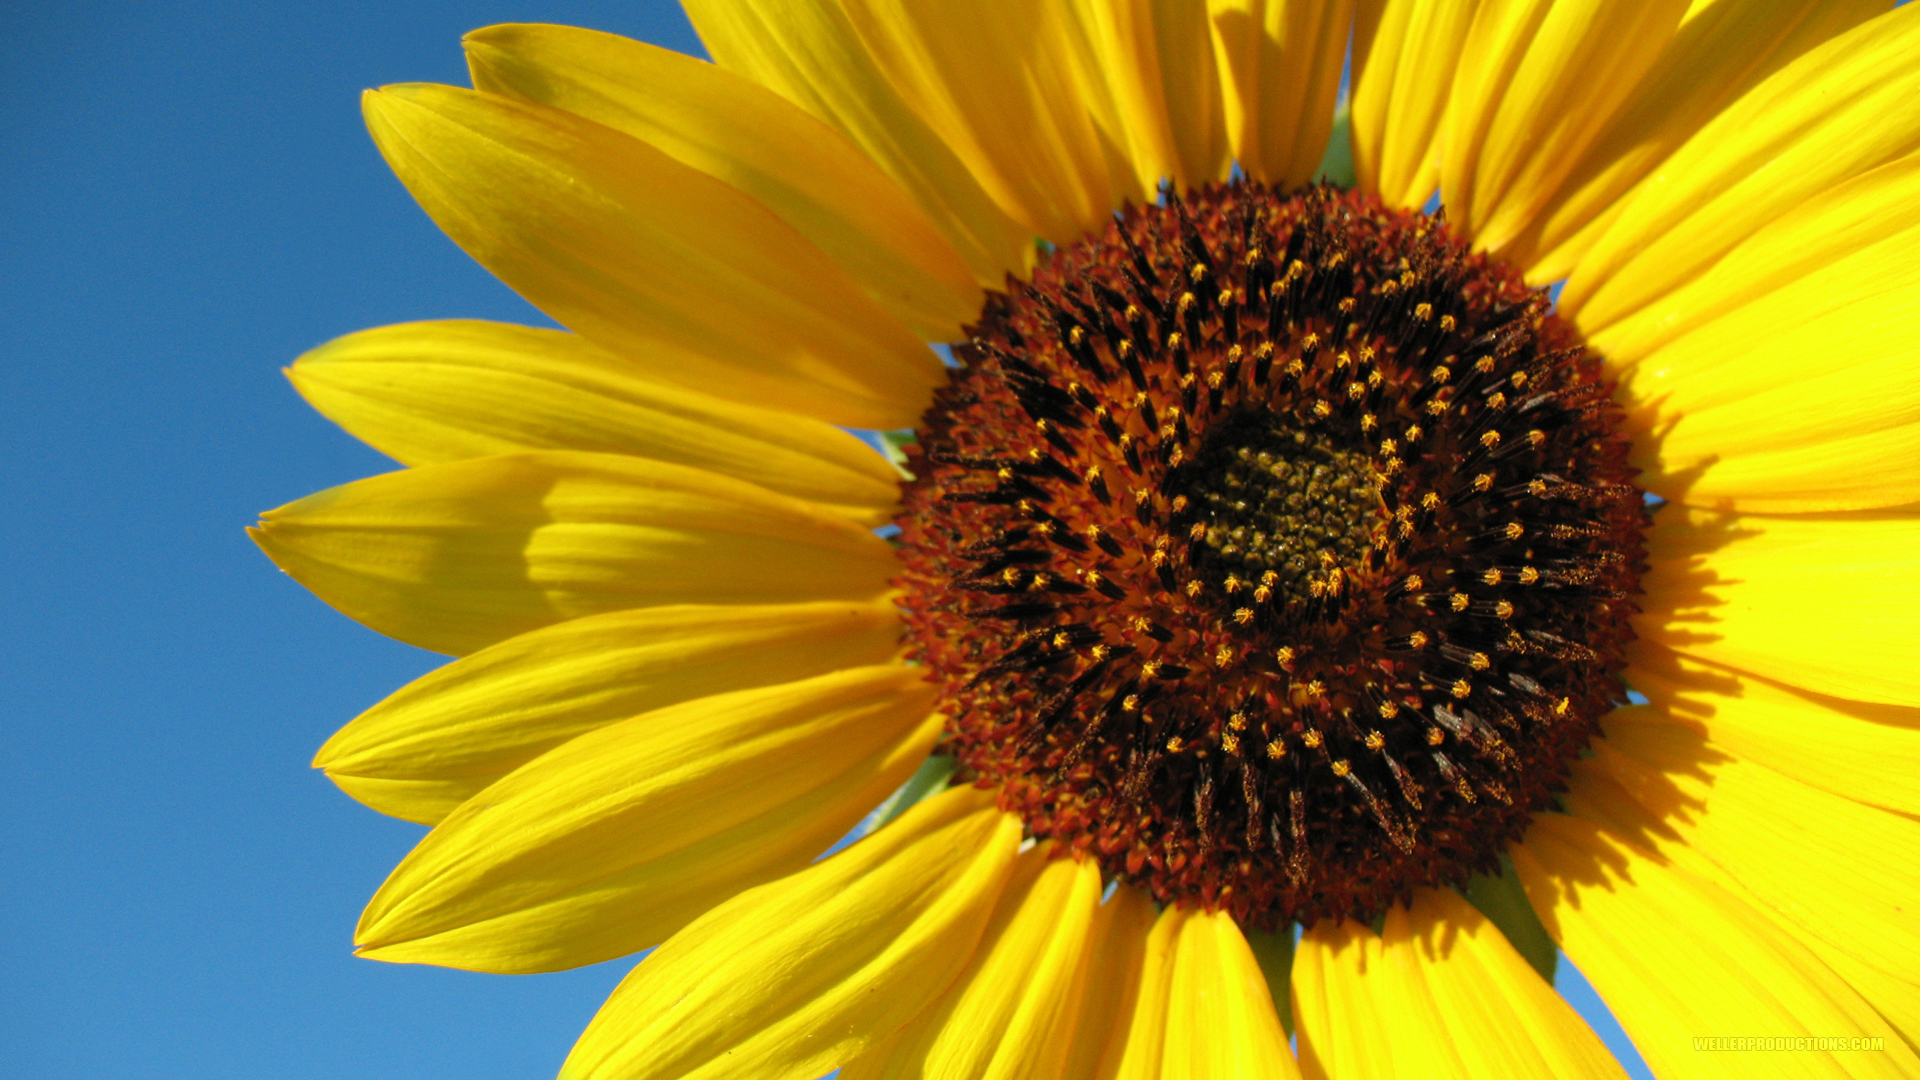 The Great Sunflower Project was started in 2008, by Gretchen LuBuhn, a biologist at San Francisco State University who was interested in the migratory ...